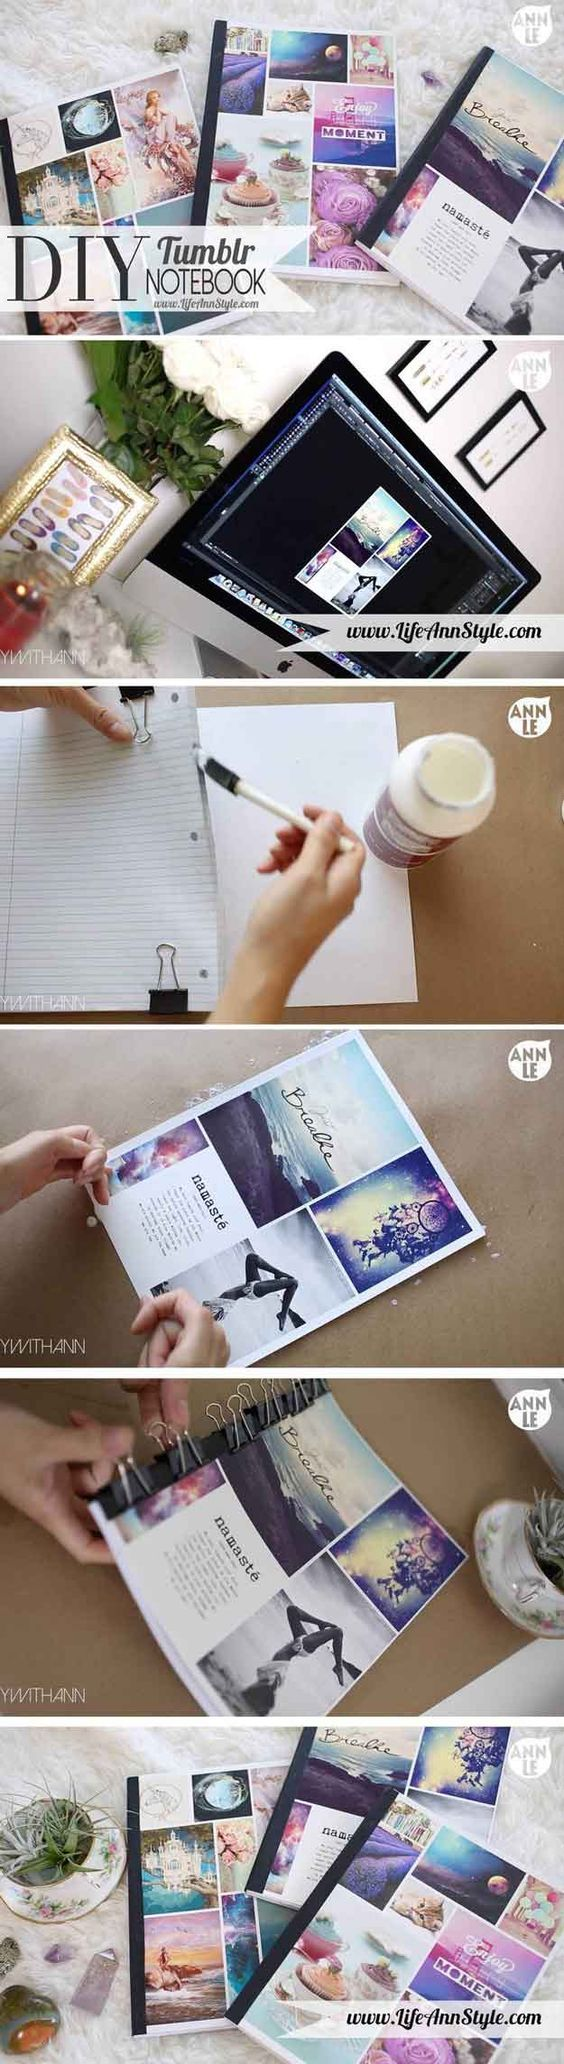 Fun DIY Projects for Teens | DIY Tumblr Notebook by DIY Ready at http://diyready.com/27-easy-diy-projects-for-teens-who-love-to-craft/::